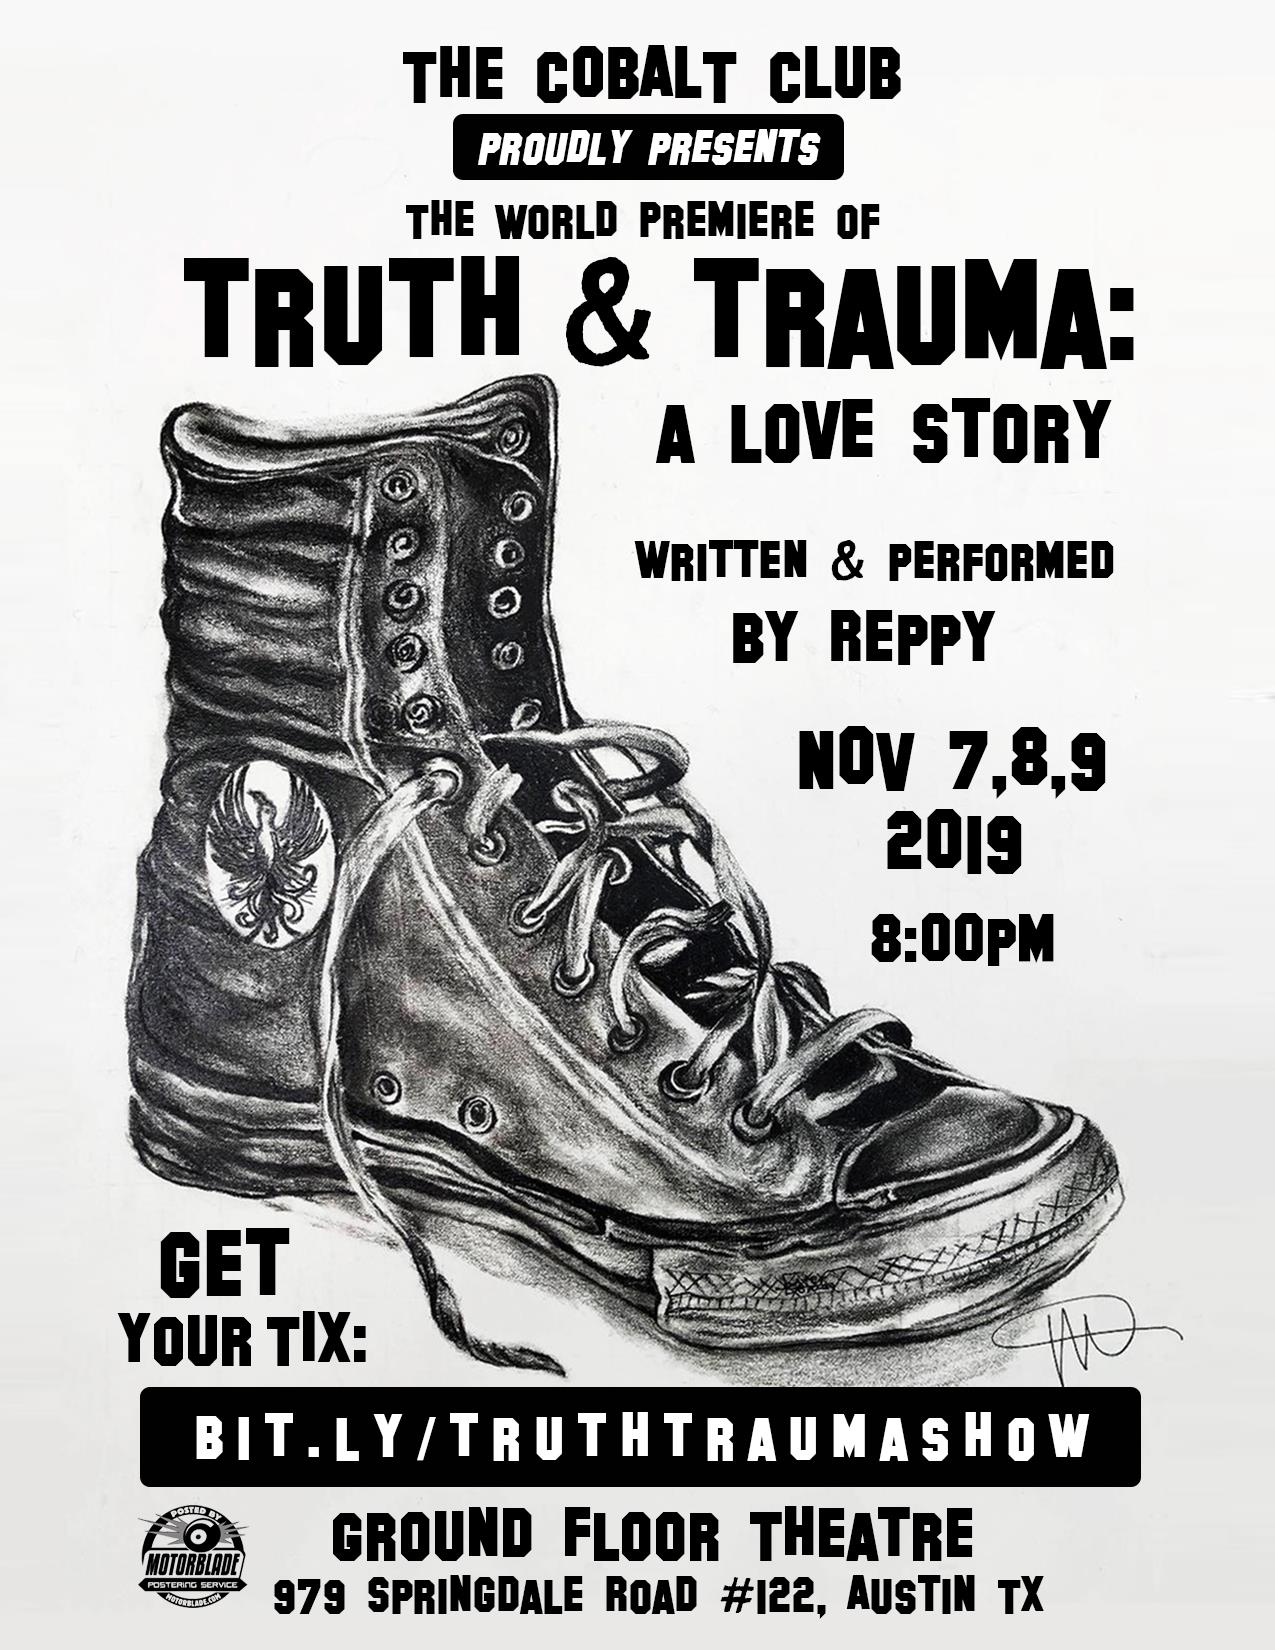 Truth & Trauma: A Love Story by Reppy